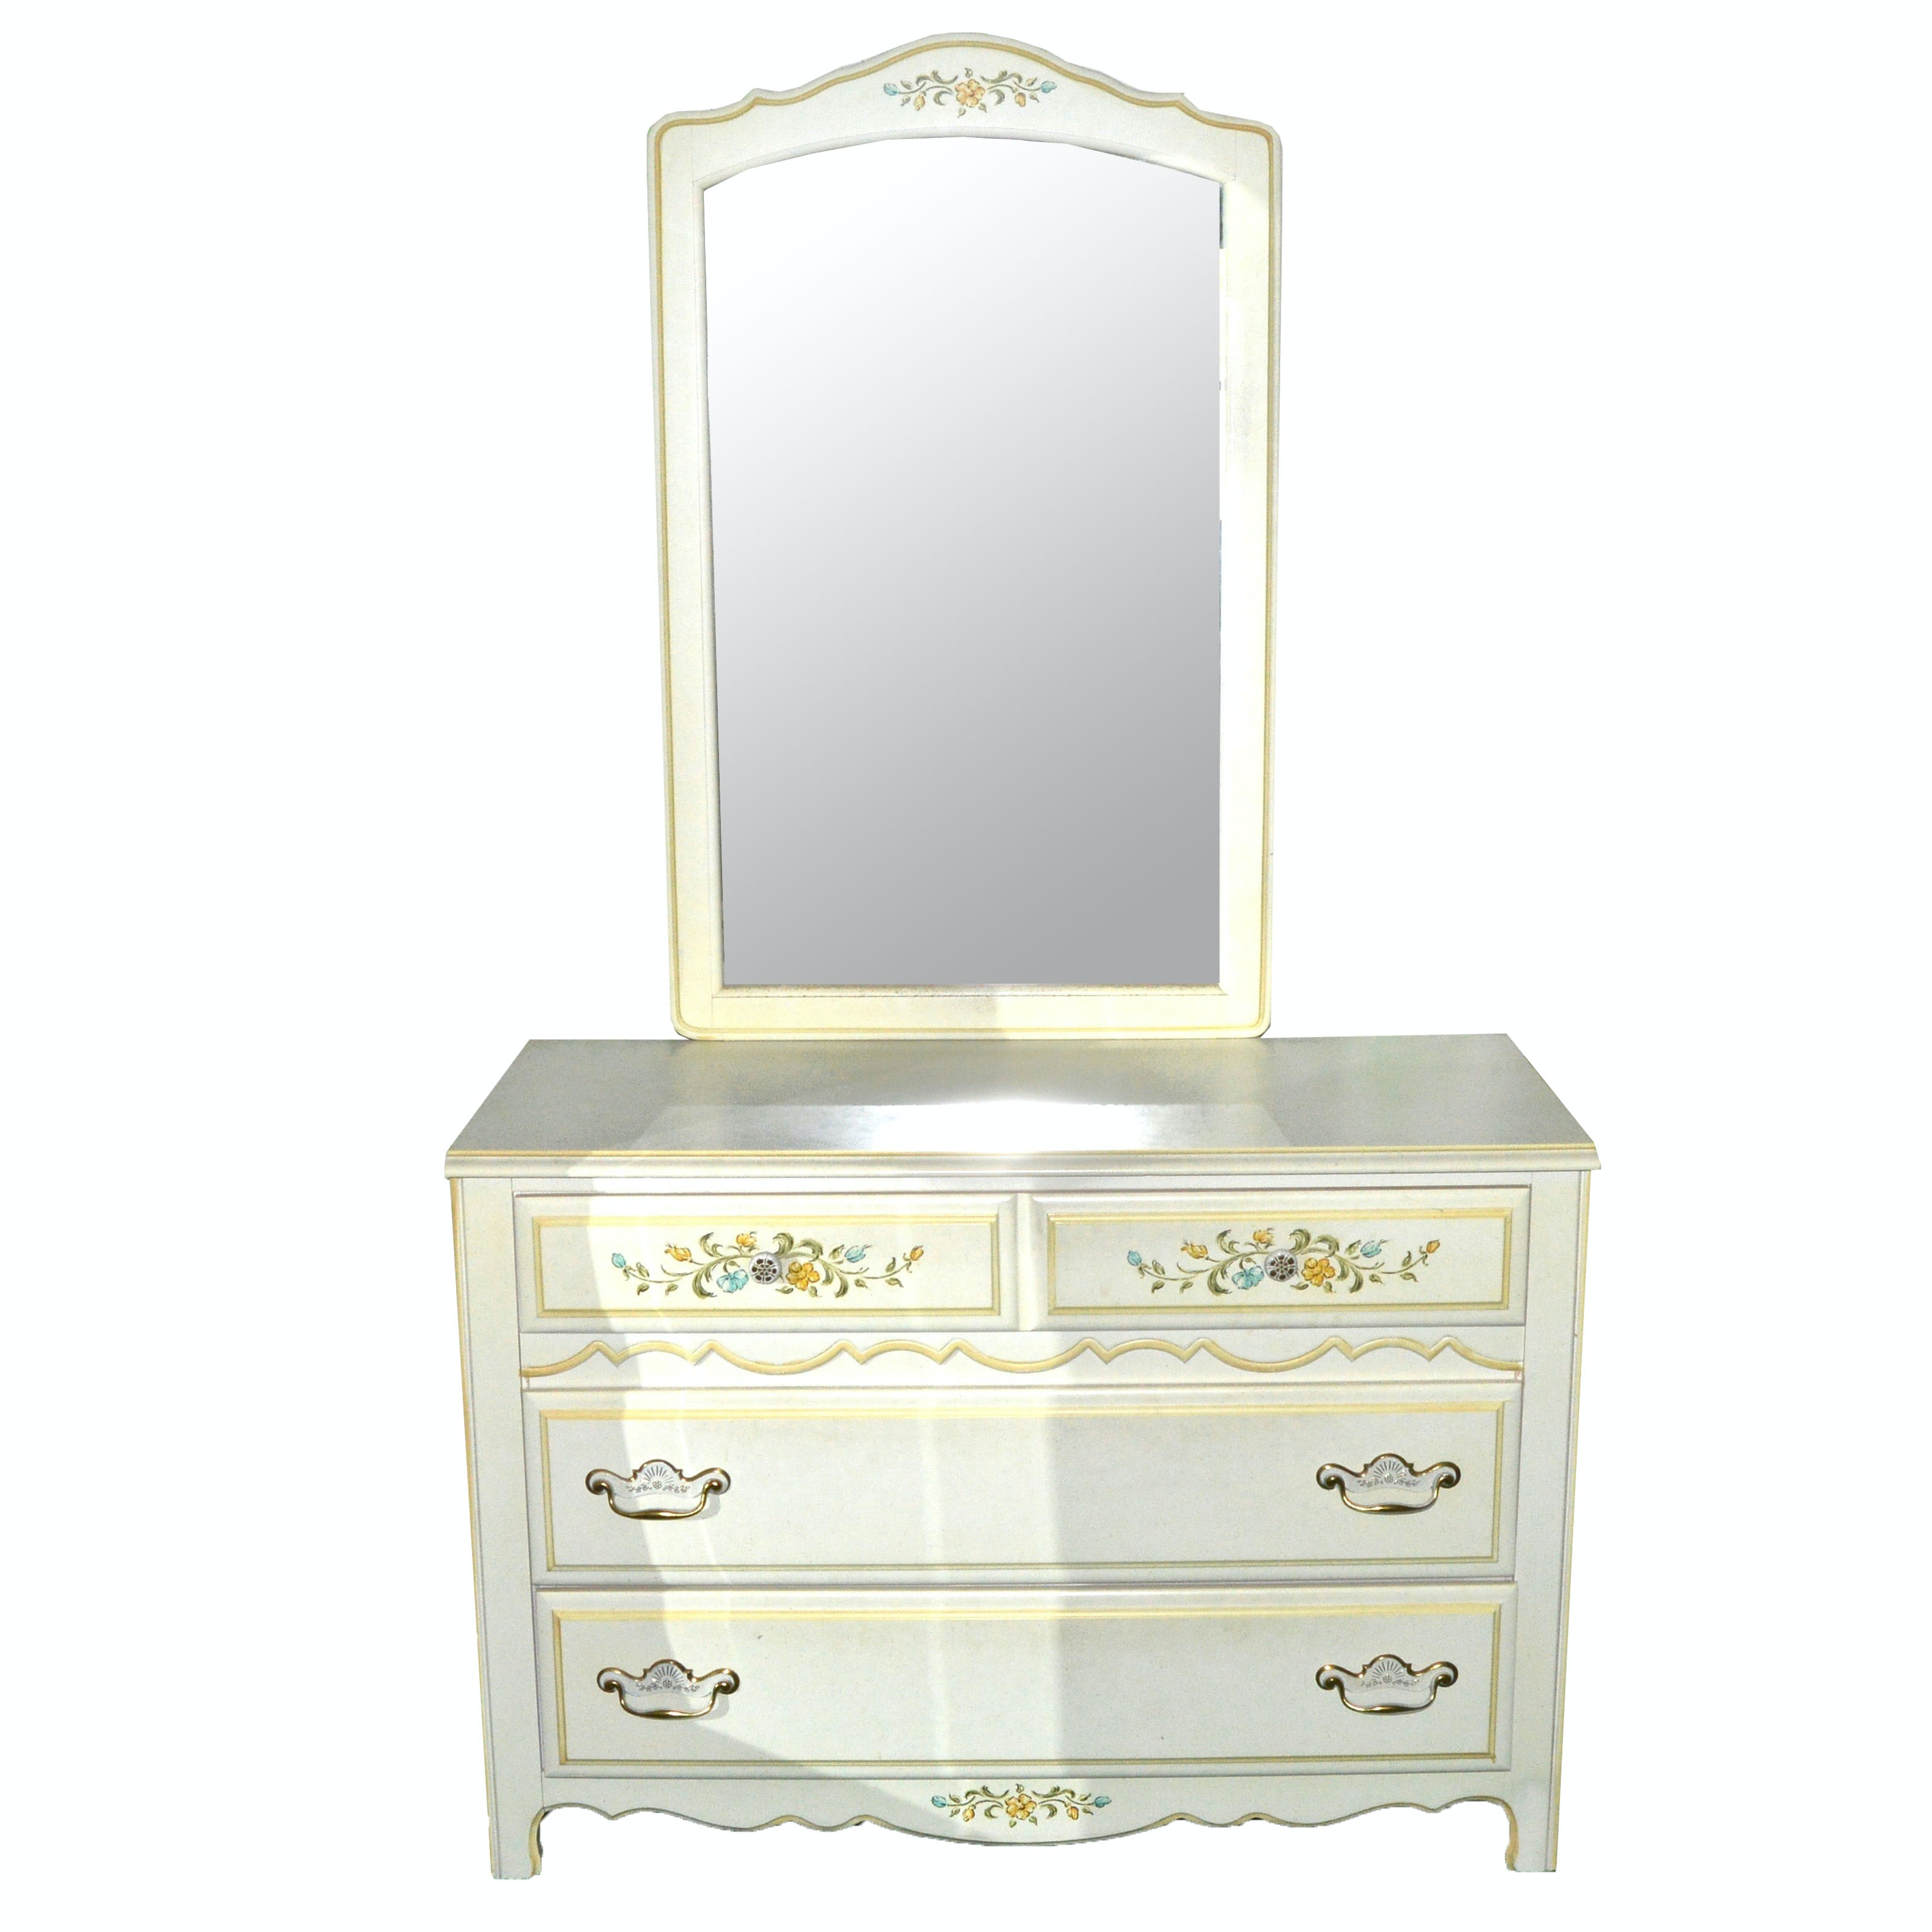 French Country Inspired Dresser with Mirror